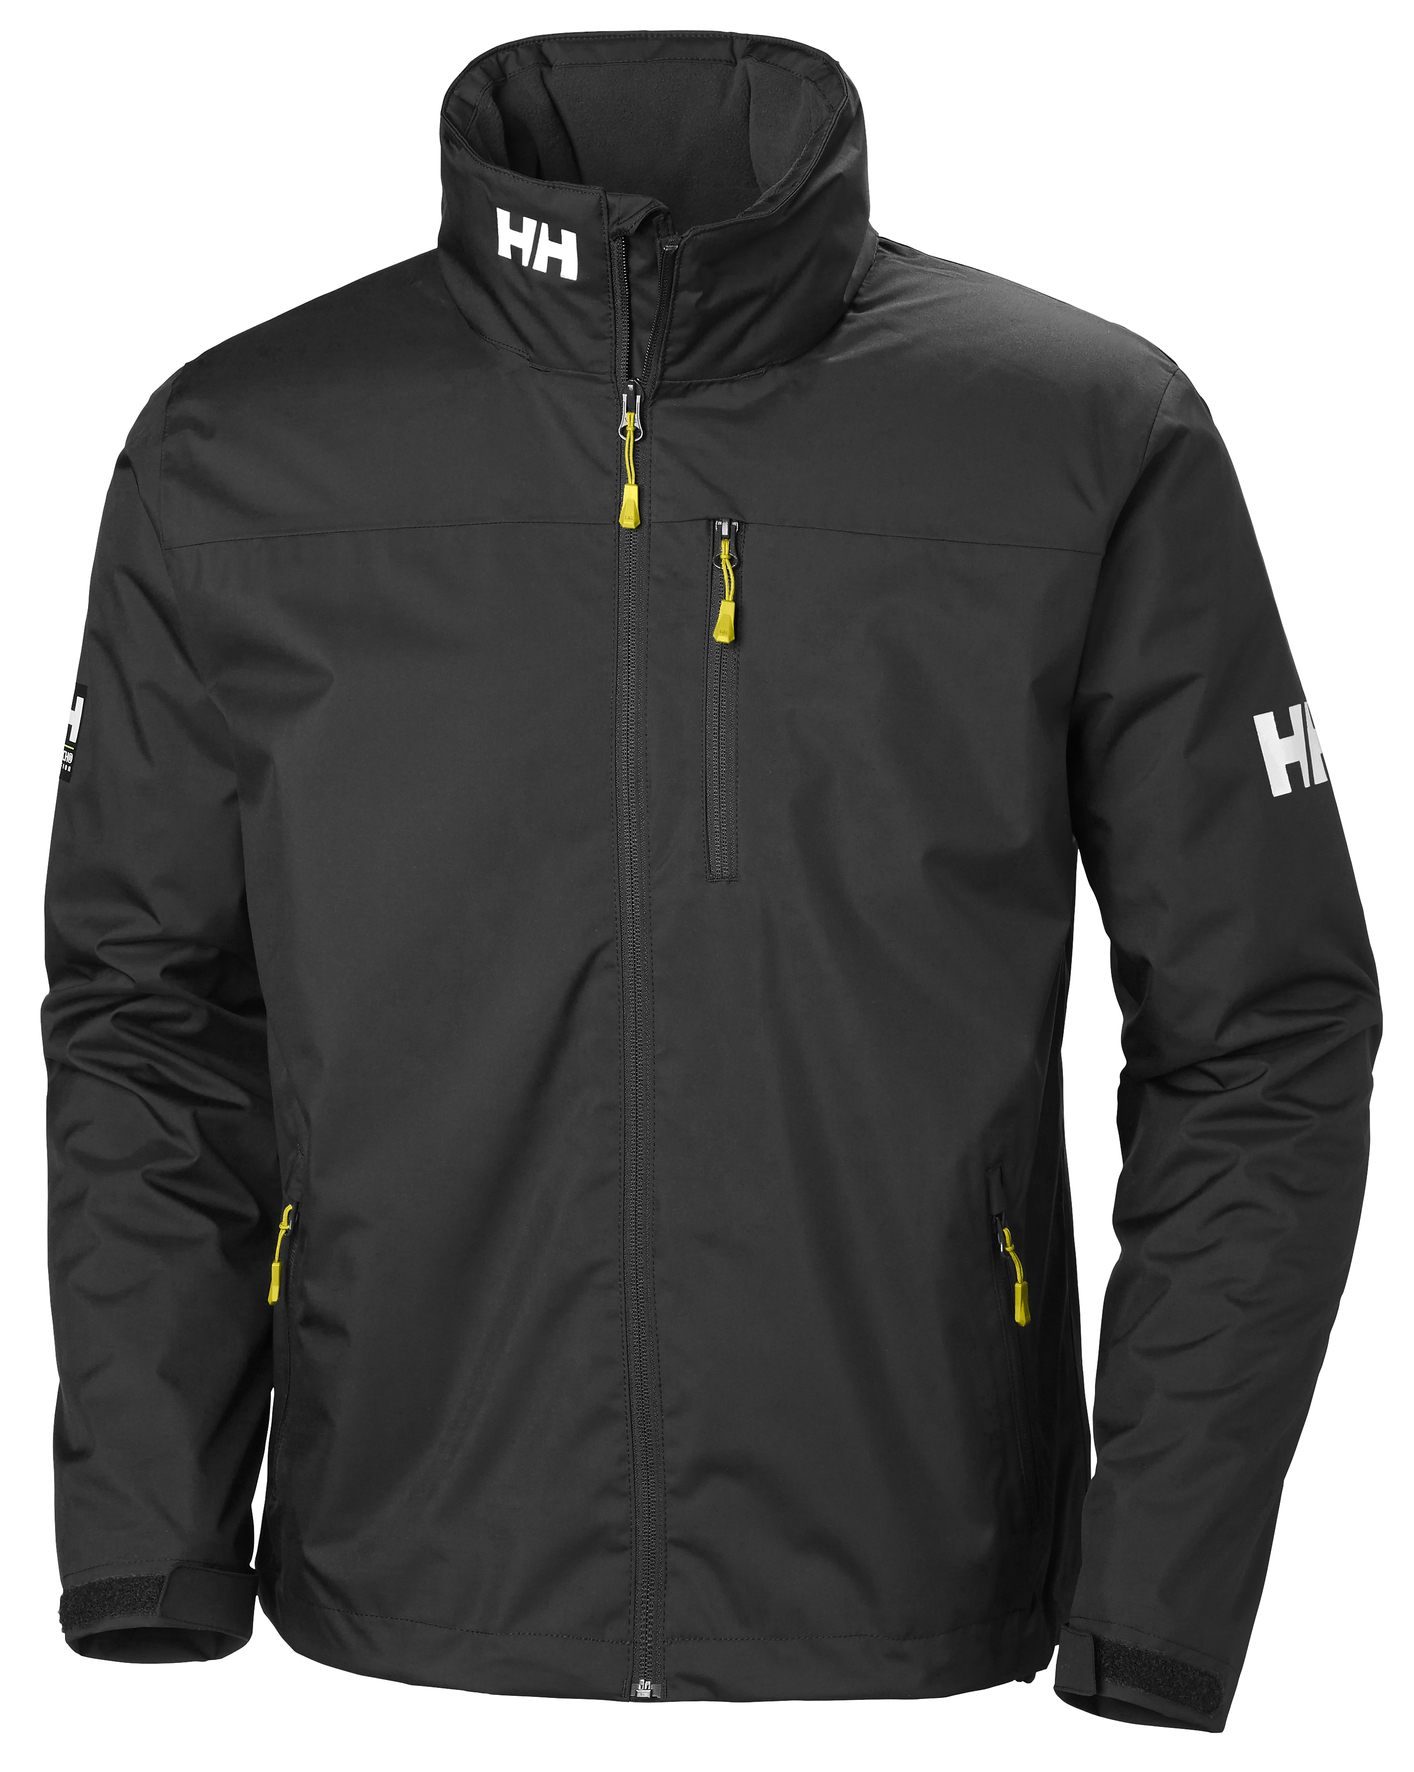 Helly Hansen - Crew Hooded jacket - Black